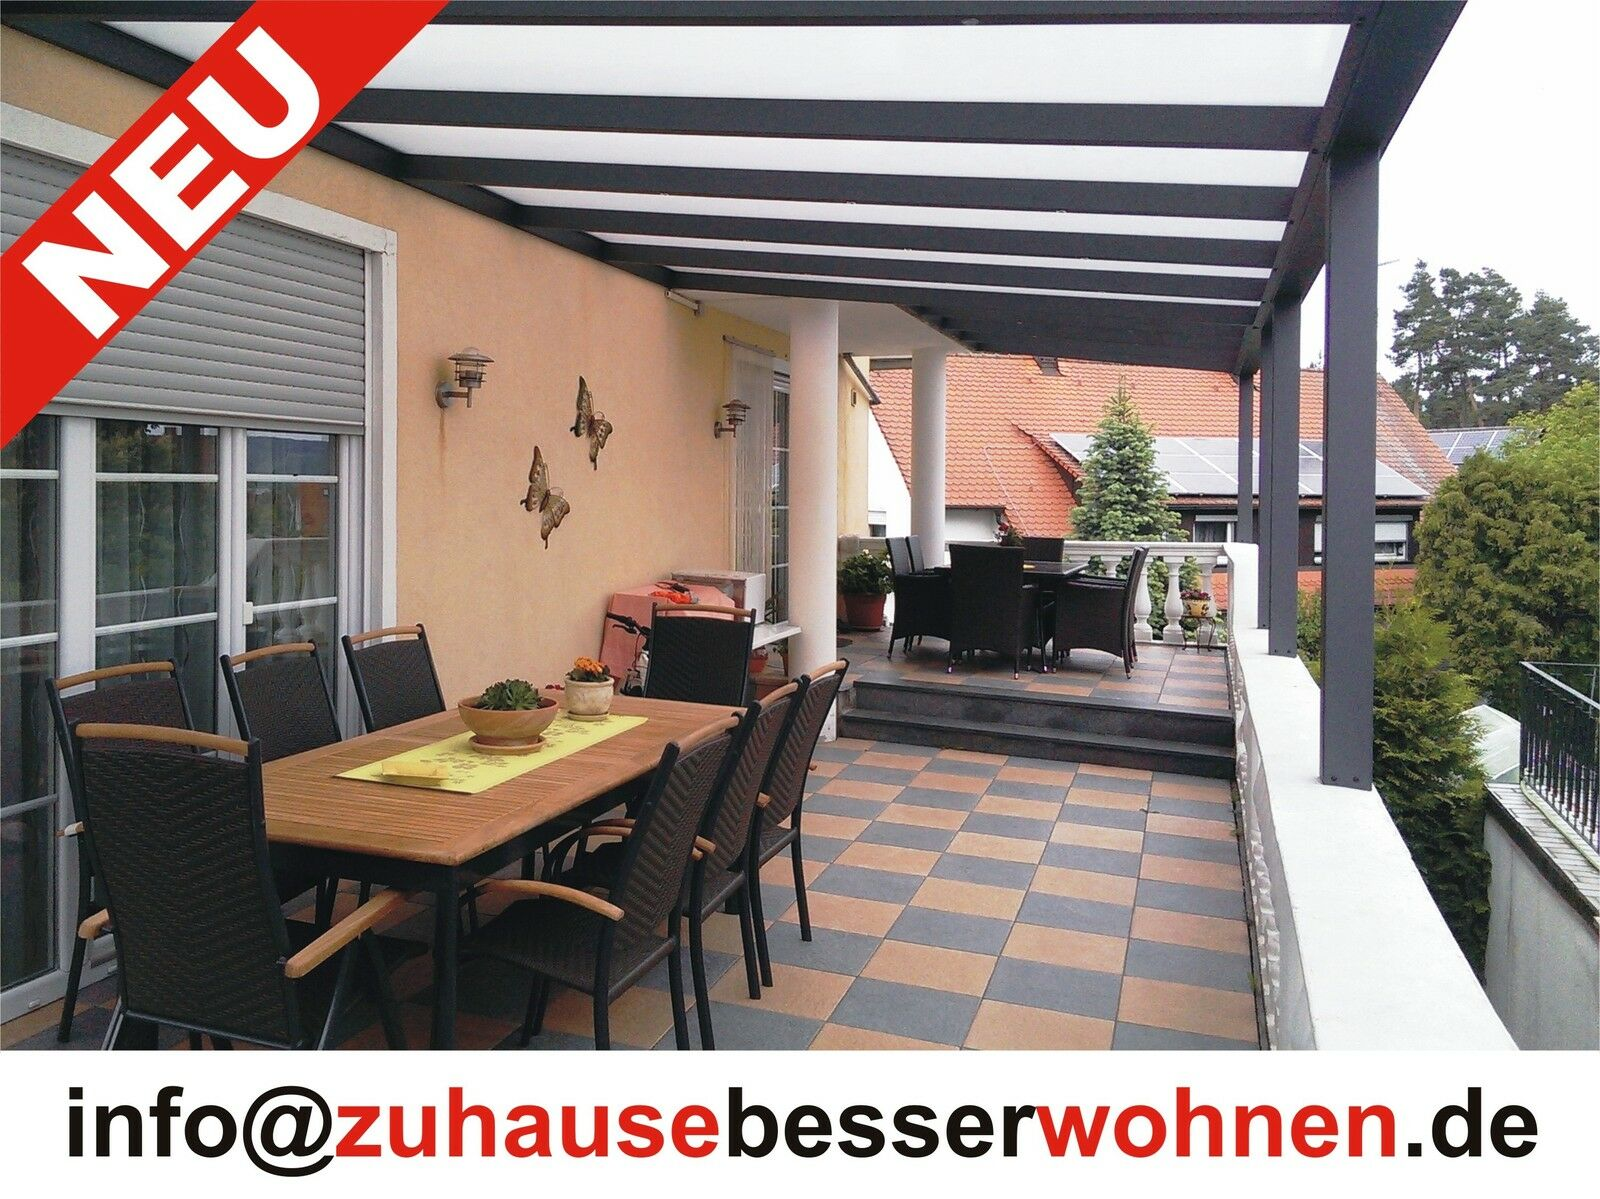 terrassen berdachung carport berdachung aluminium terrassendach vsg glas 4x3 5 eur. Black Bedroom Furniture Sets. Home Design Ideas